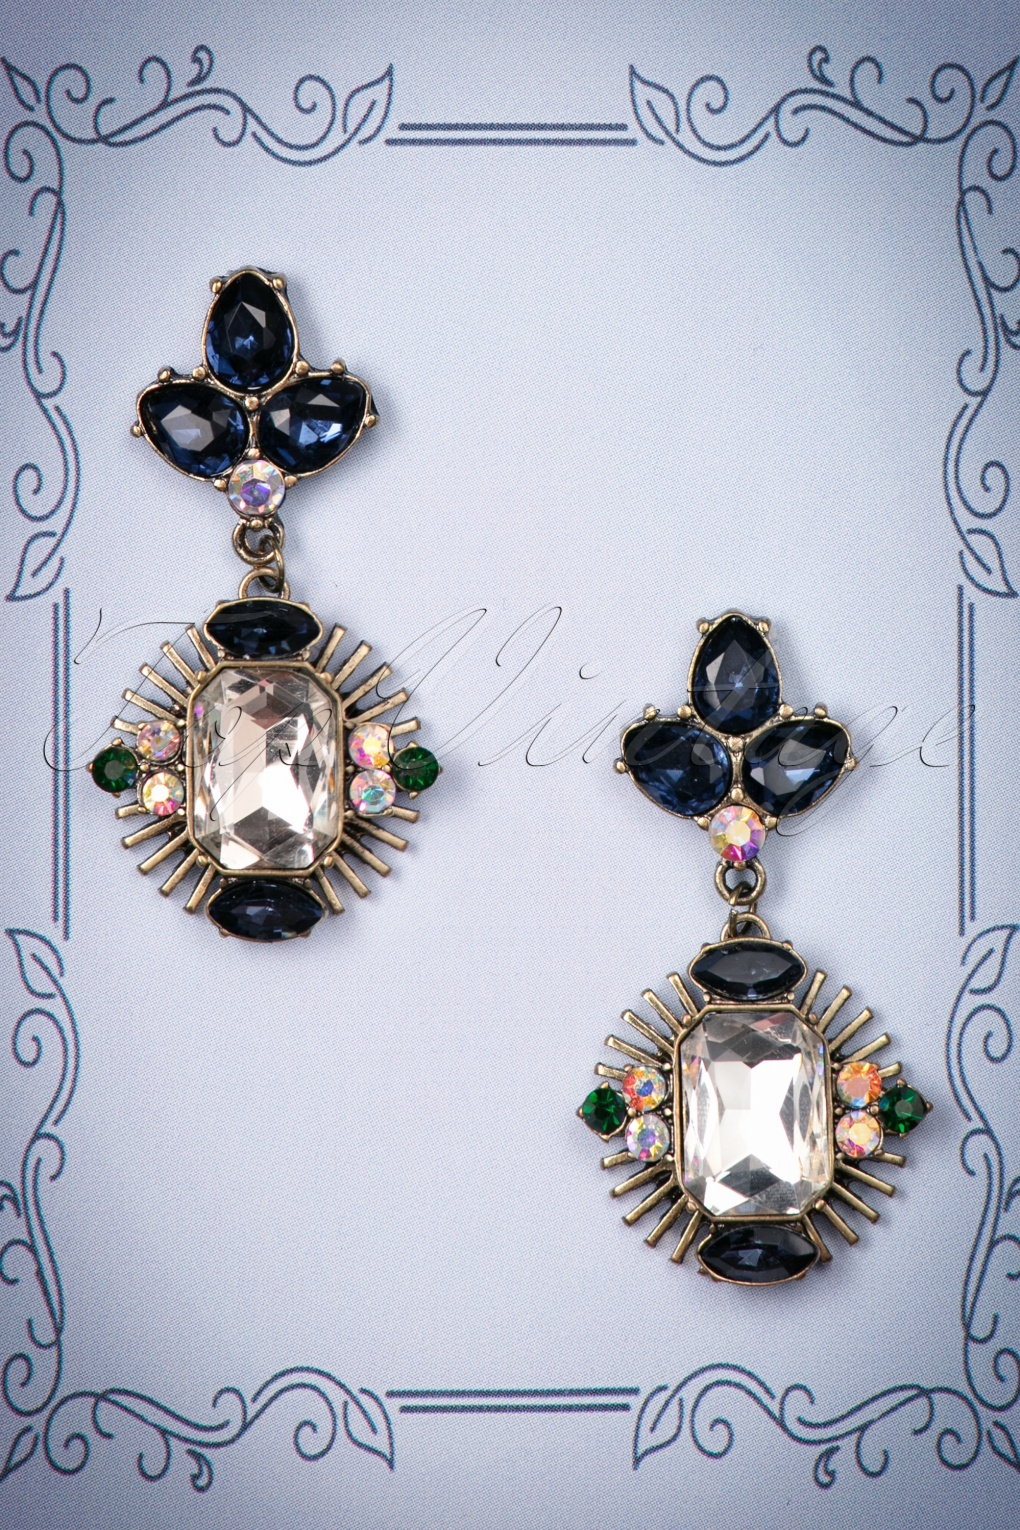 1920s Jewelry Styles History 20s Stephanie Blue Stone Aztec Earrings in Gold £13.09 AT vintagedancer.com